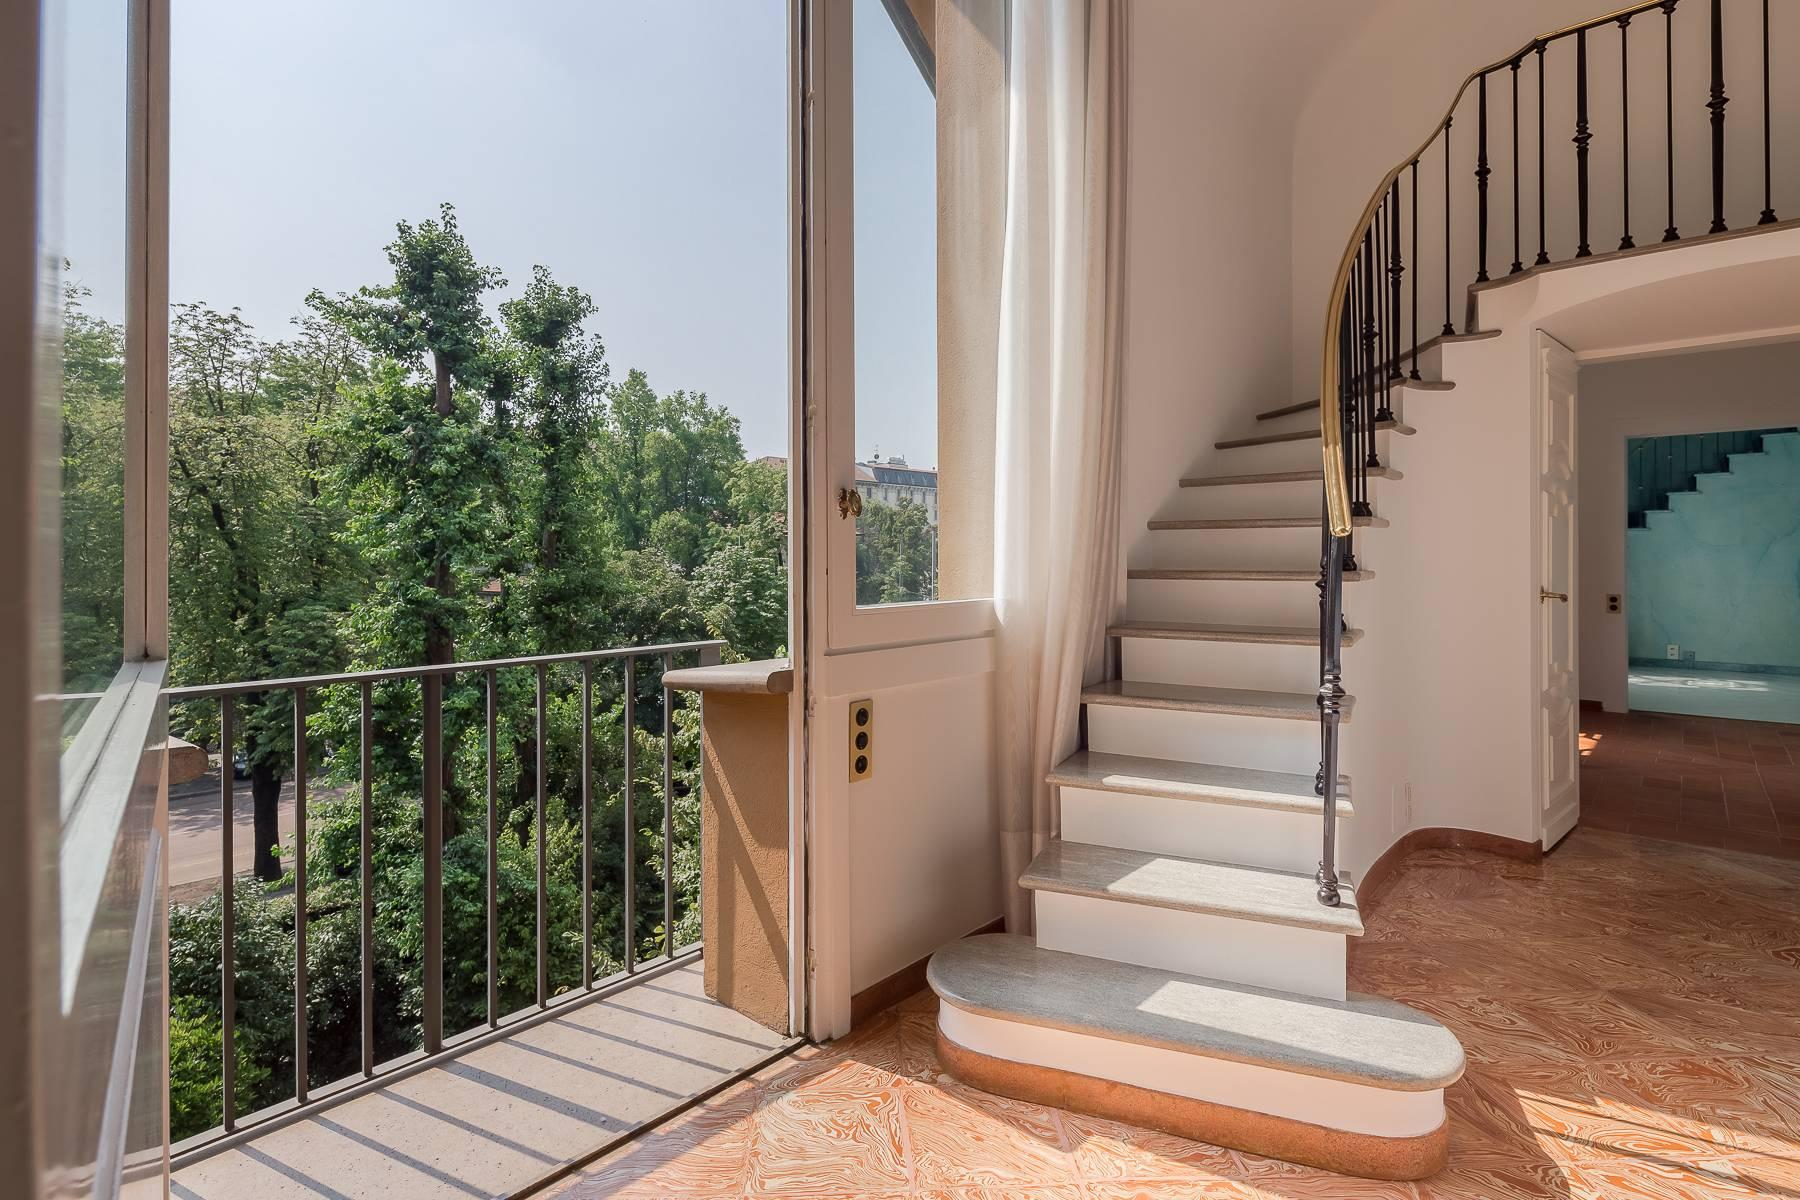 Inviting 482 sqm property with a view of the greenery in the XX Settembre / Tamburini area - 9